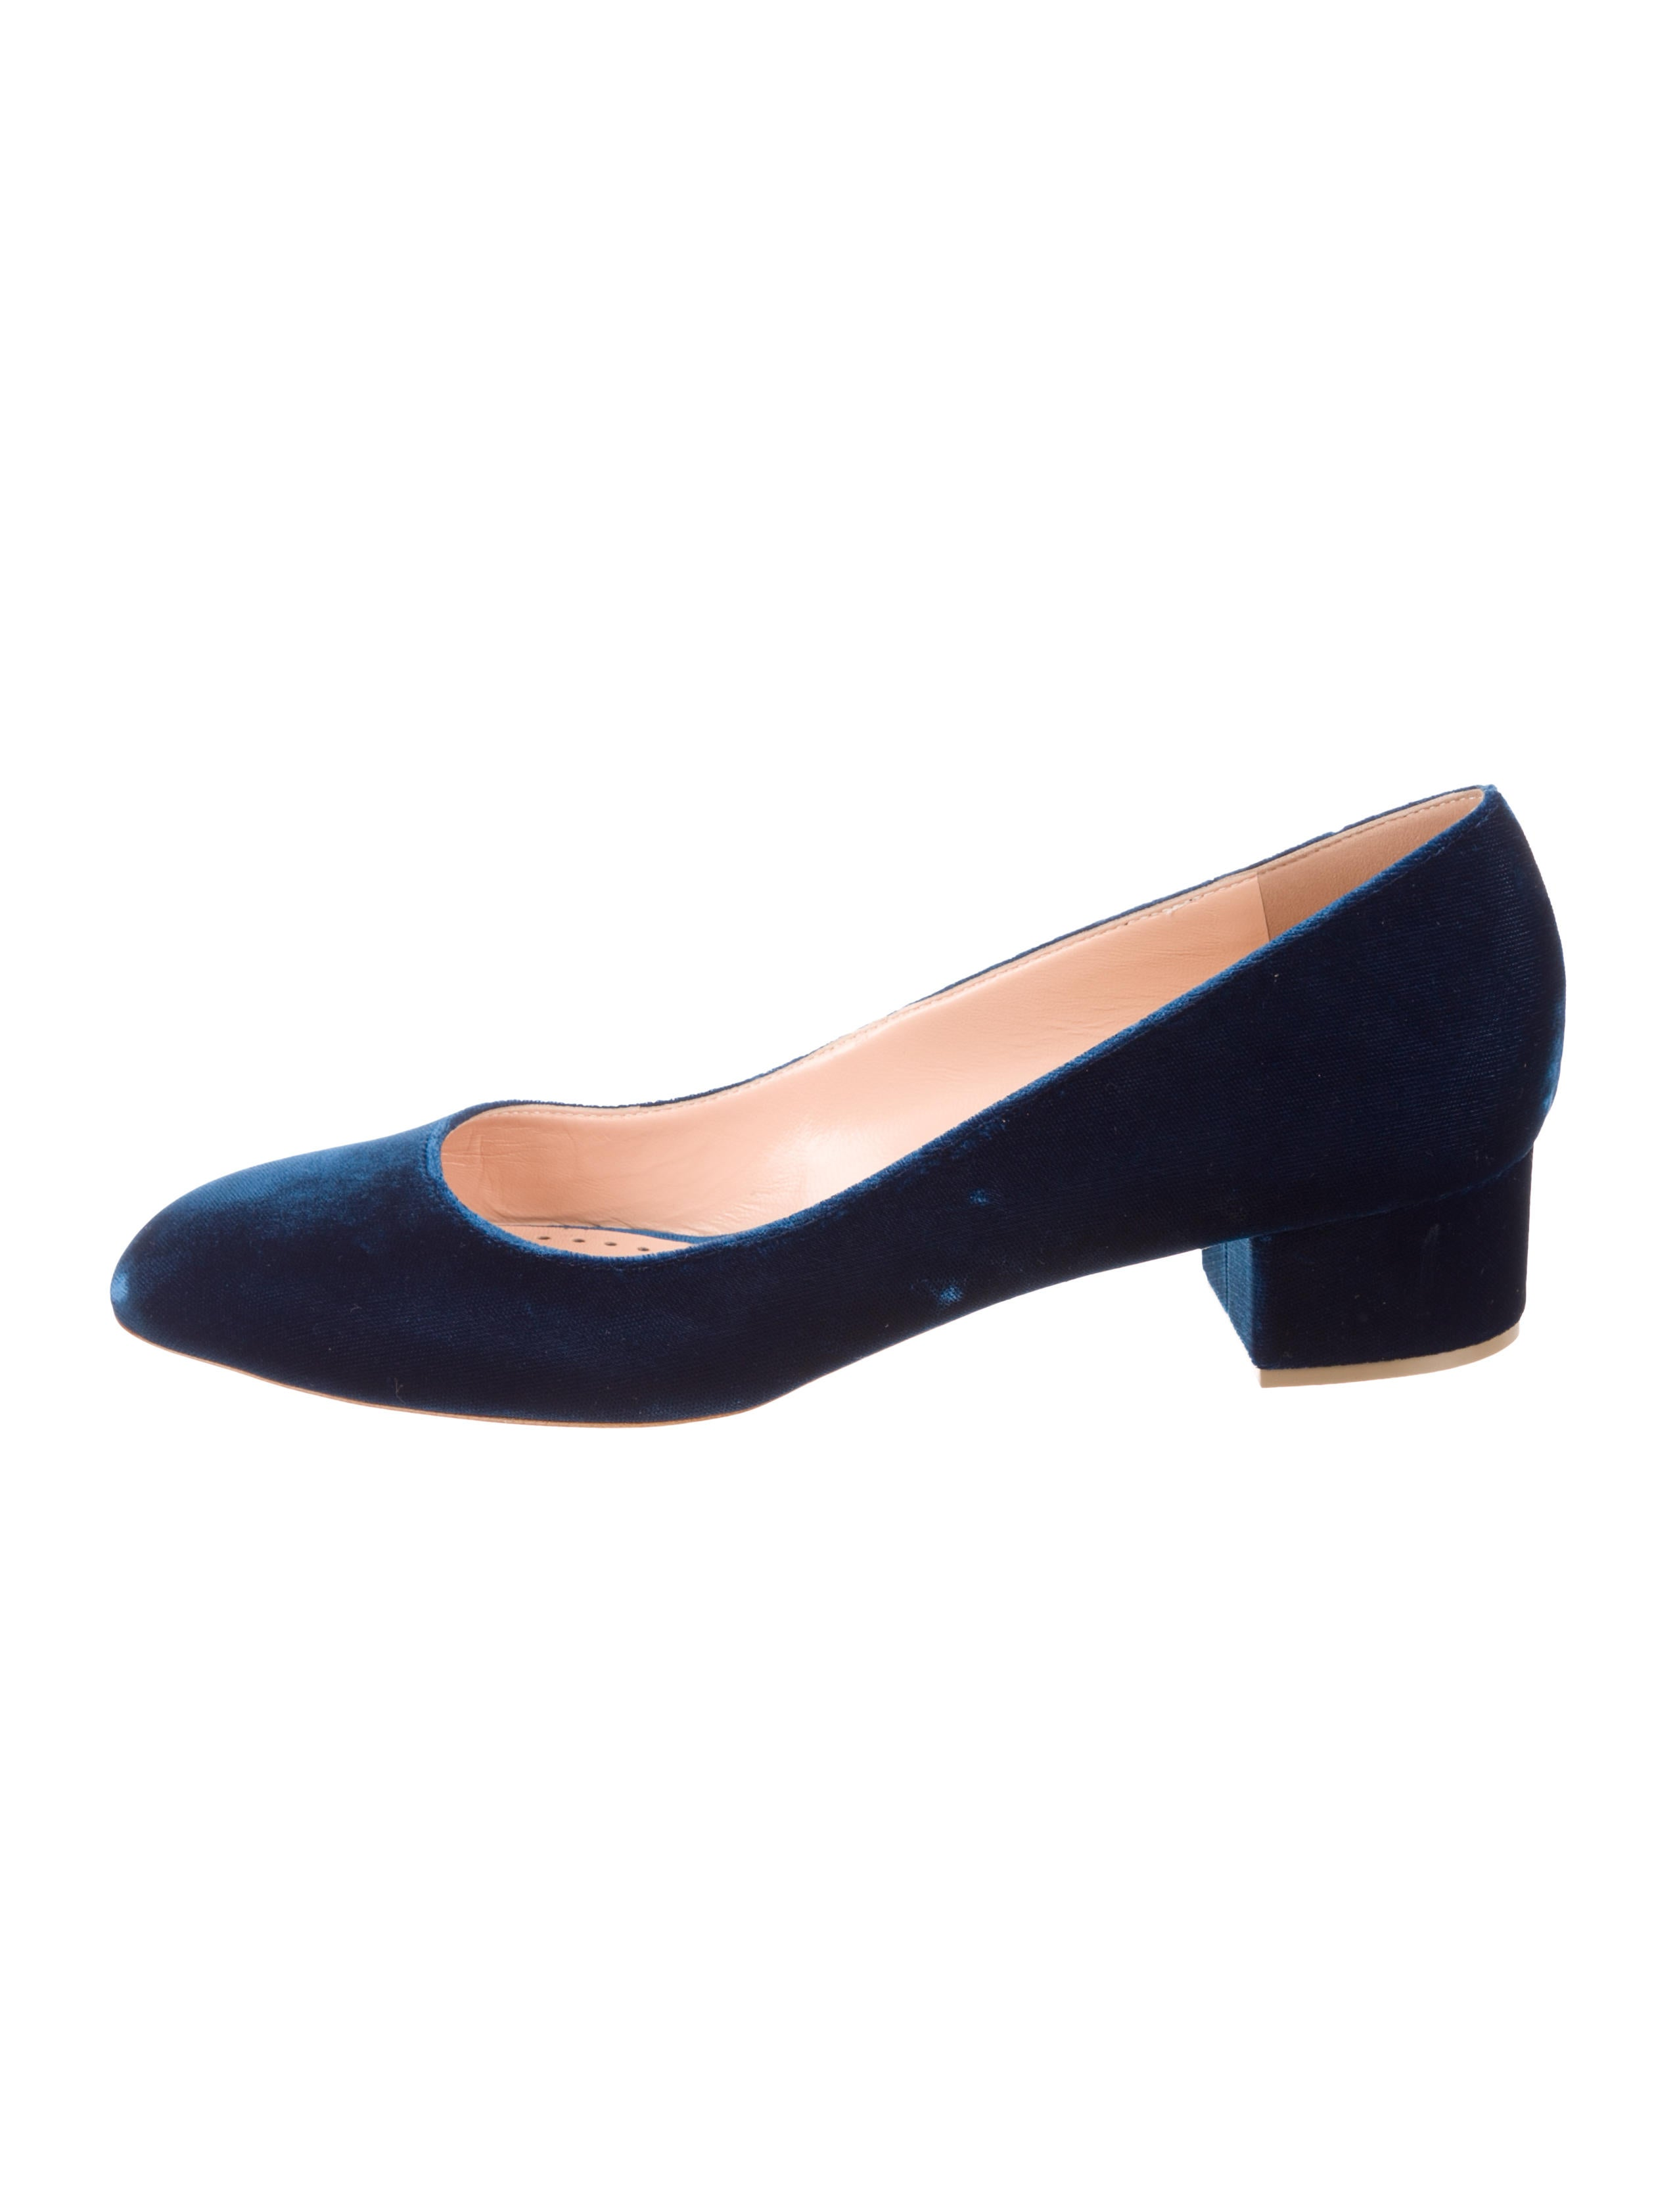 ebay online Rupert Sanderson Carita Velvet Pumps w/ Tags 100% guaranteed cheap online pay with paypal cheap price cheap factory outlet cheap sale 2014 new ncsSKMwLD